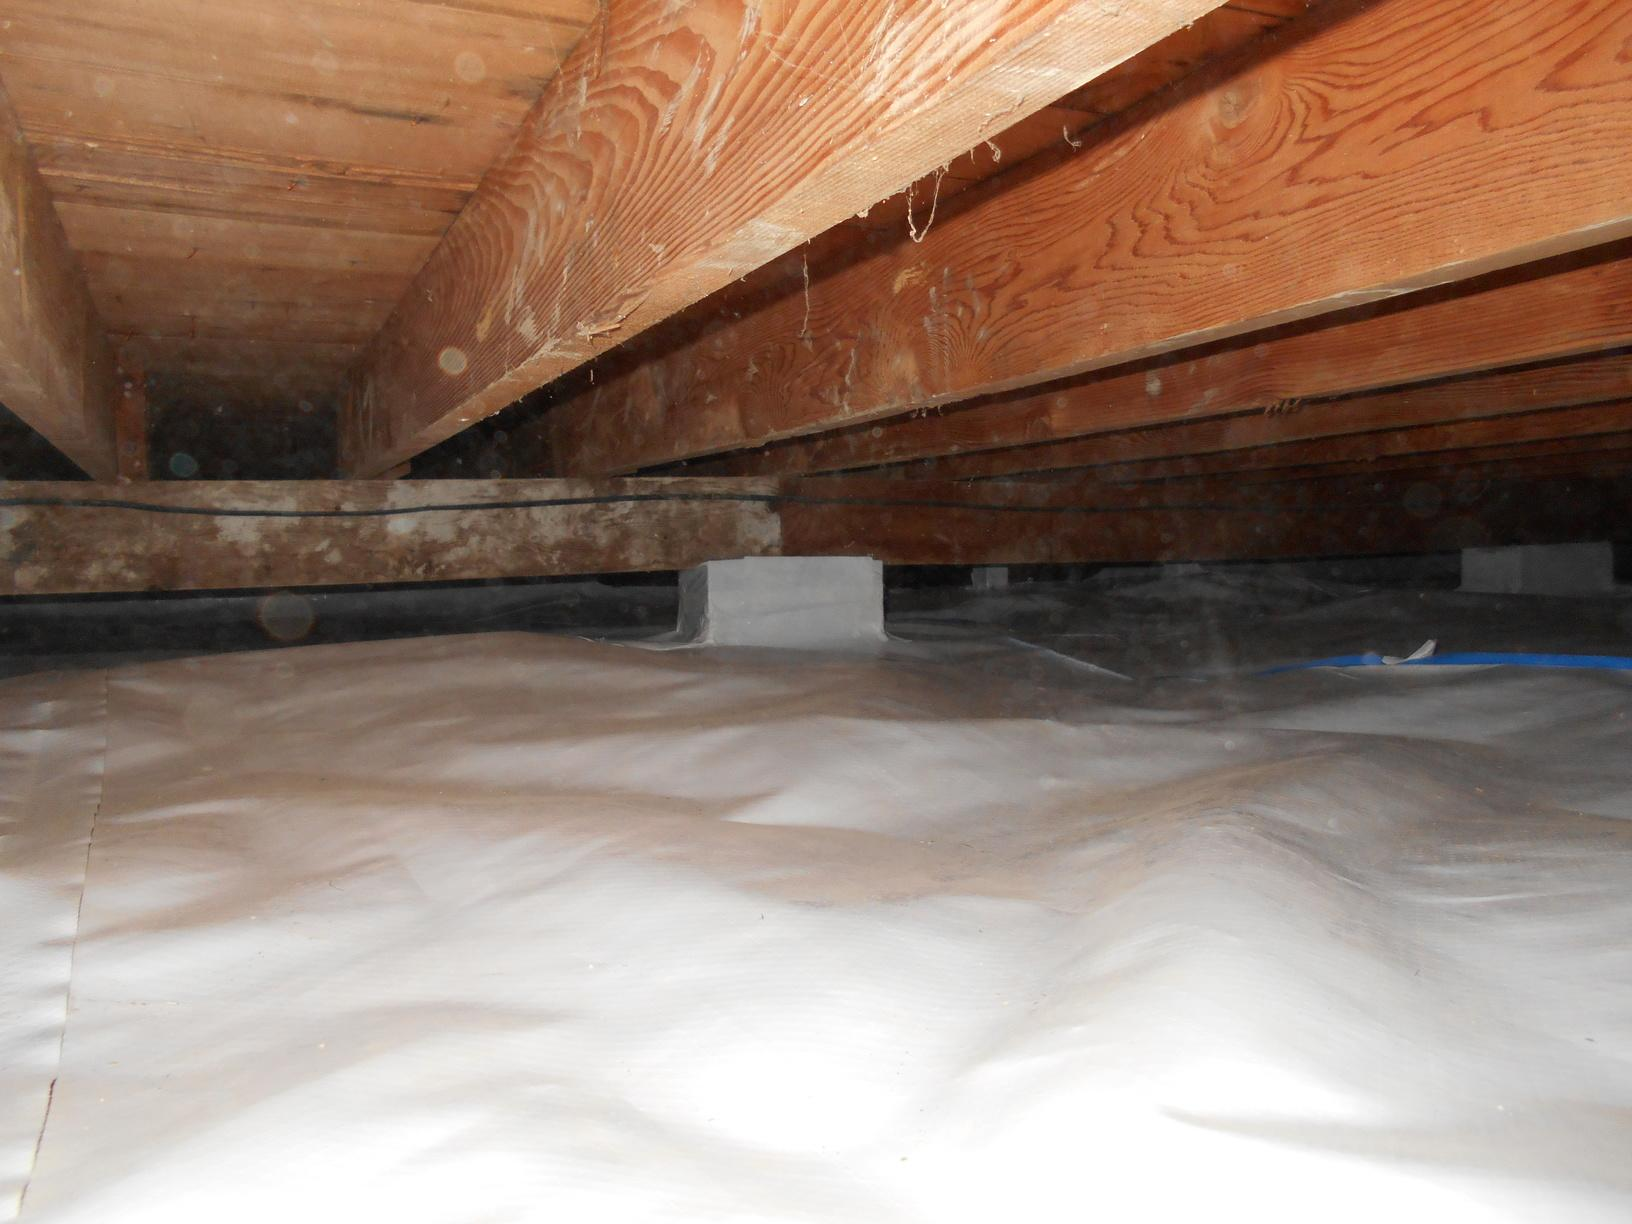 Overview of crawlspace